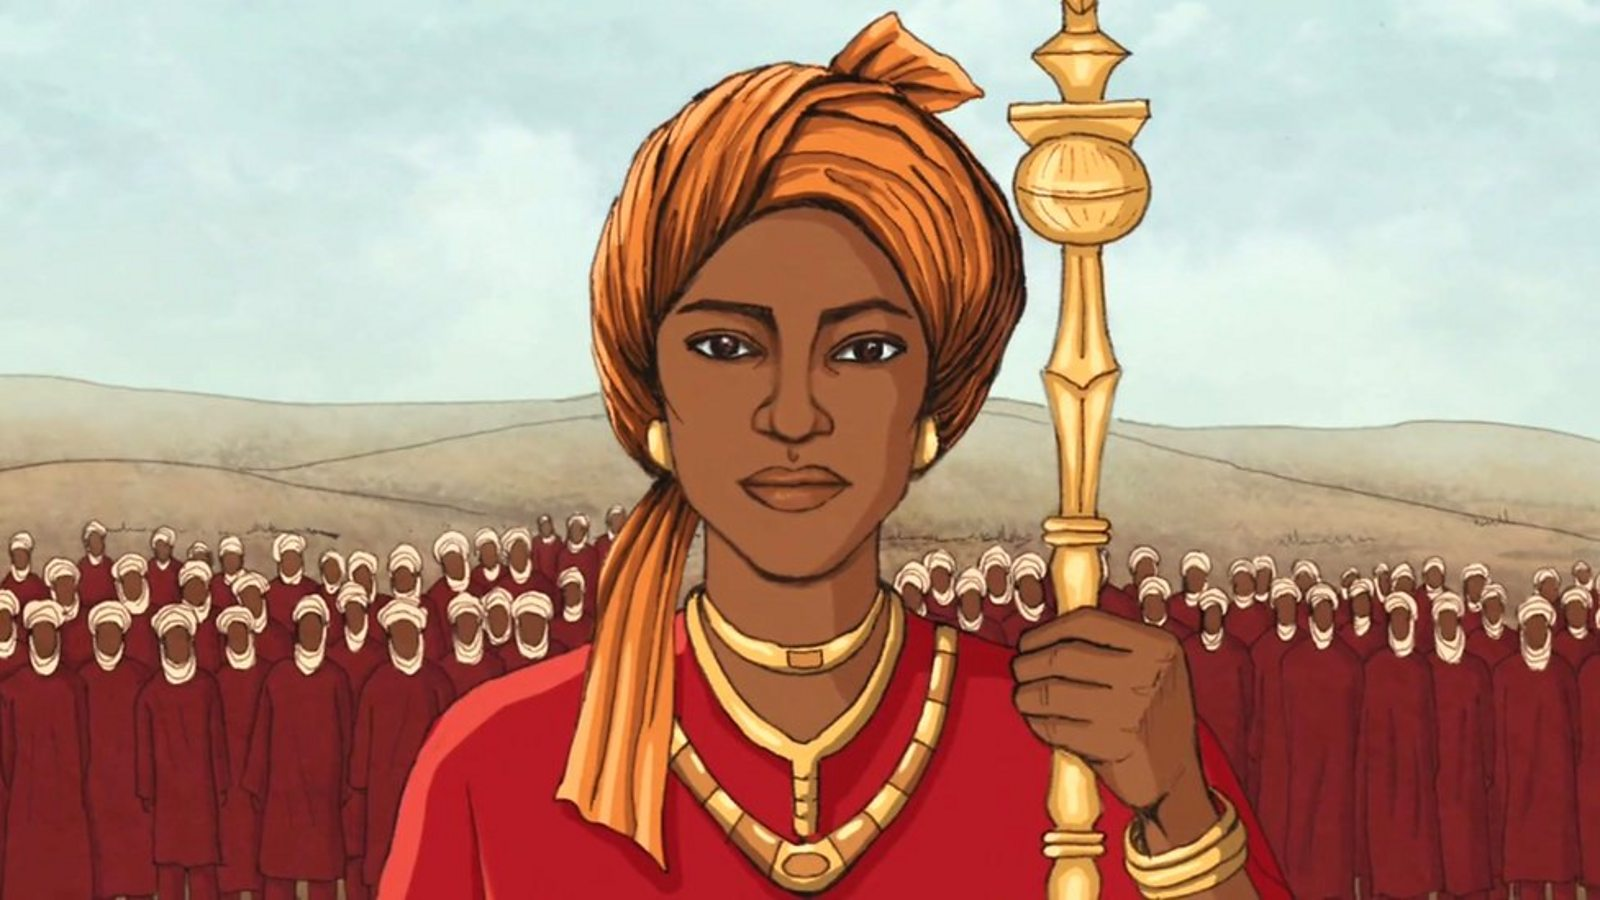 The warrior queen who led men into battle